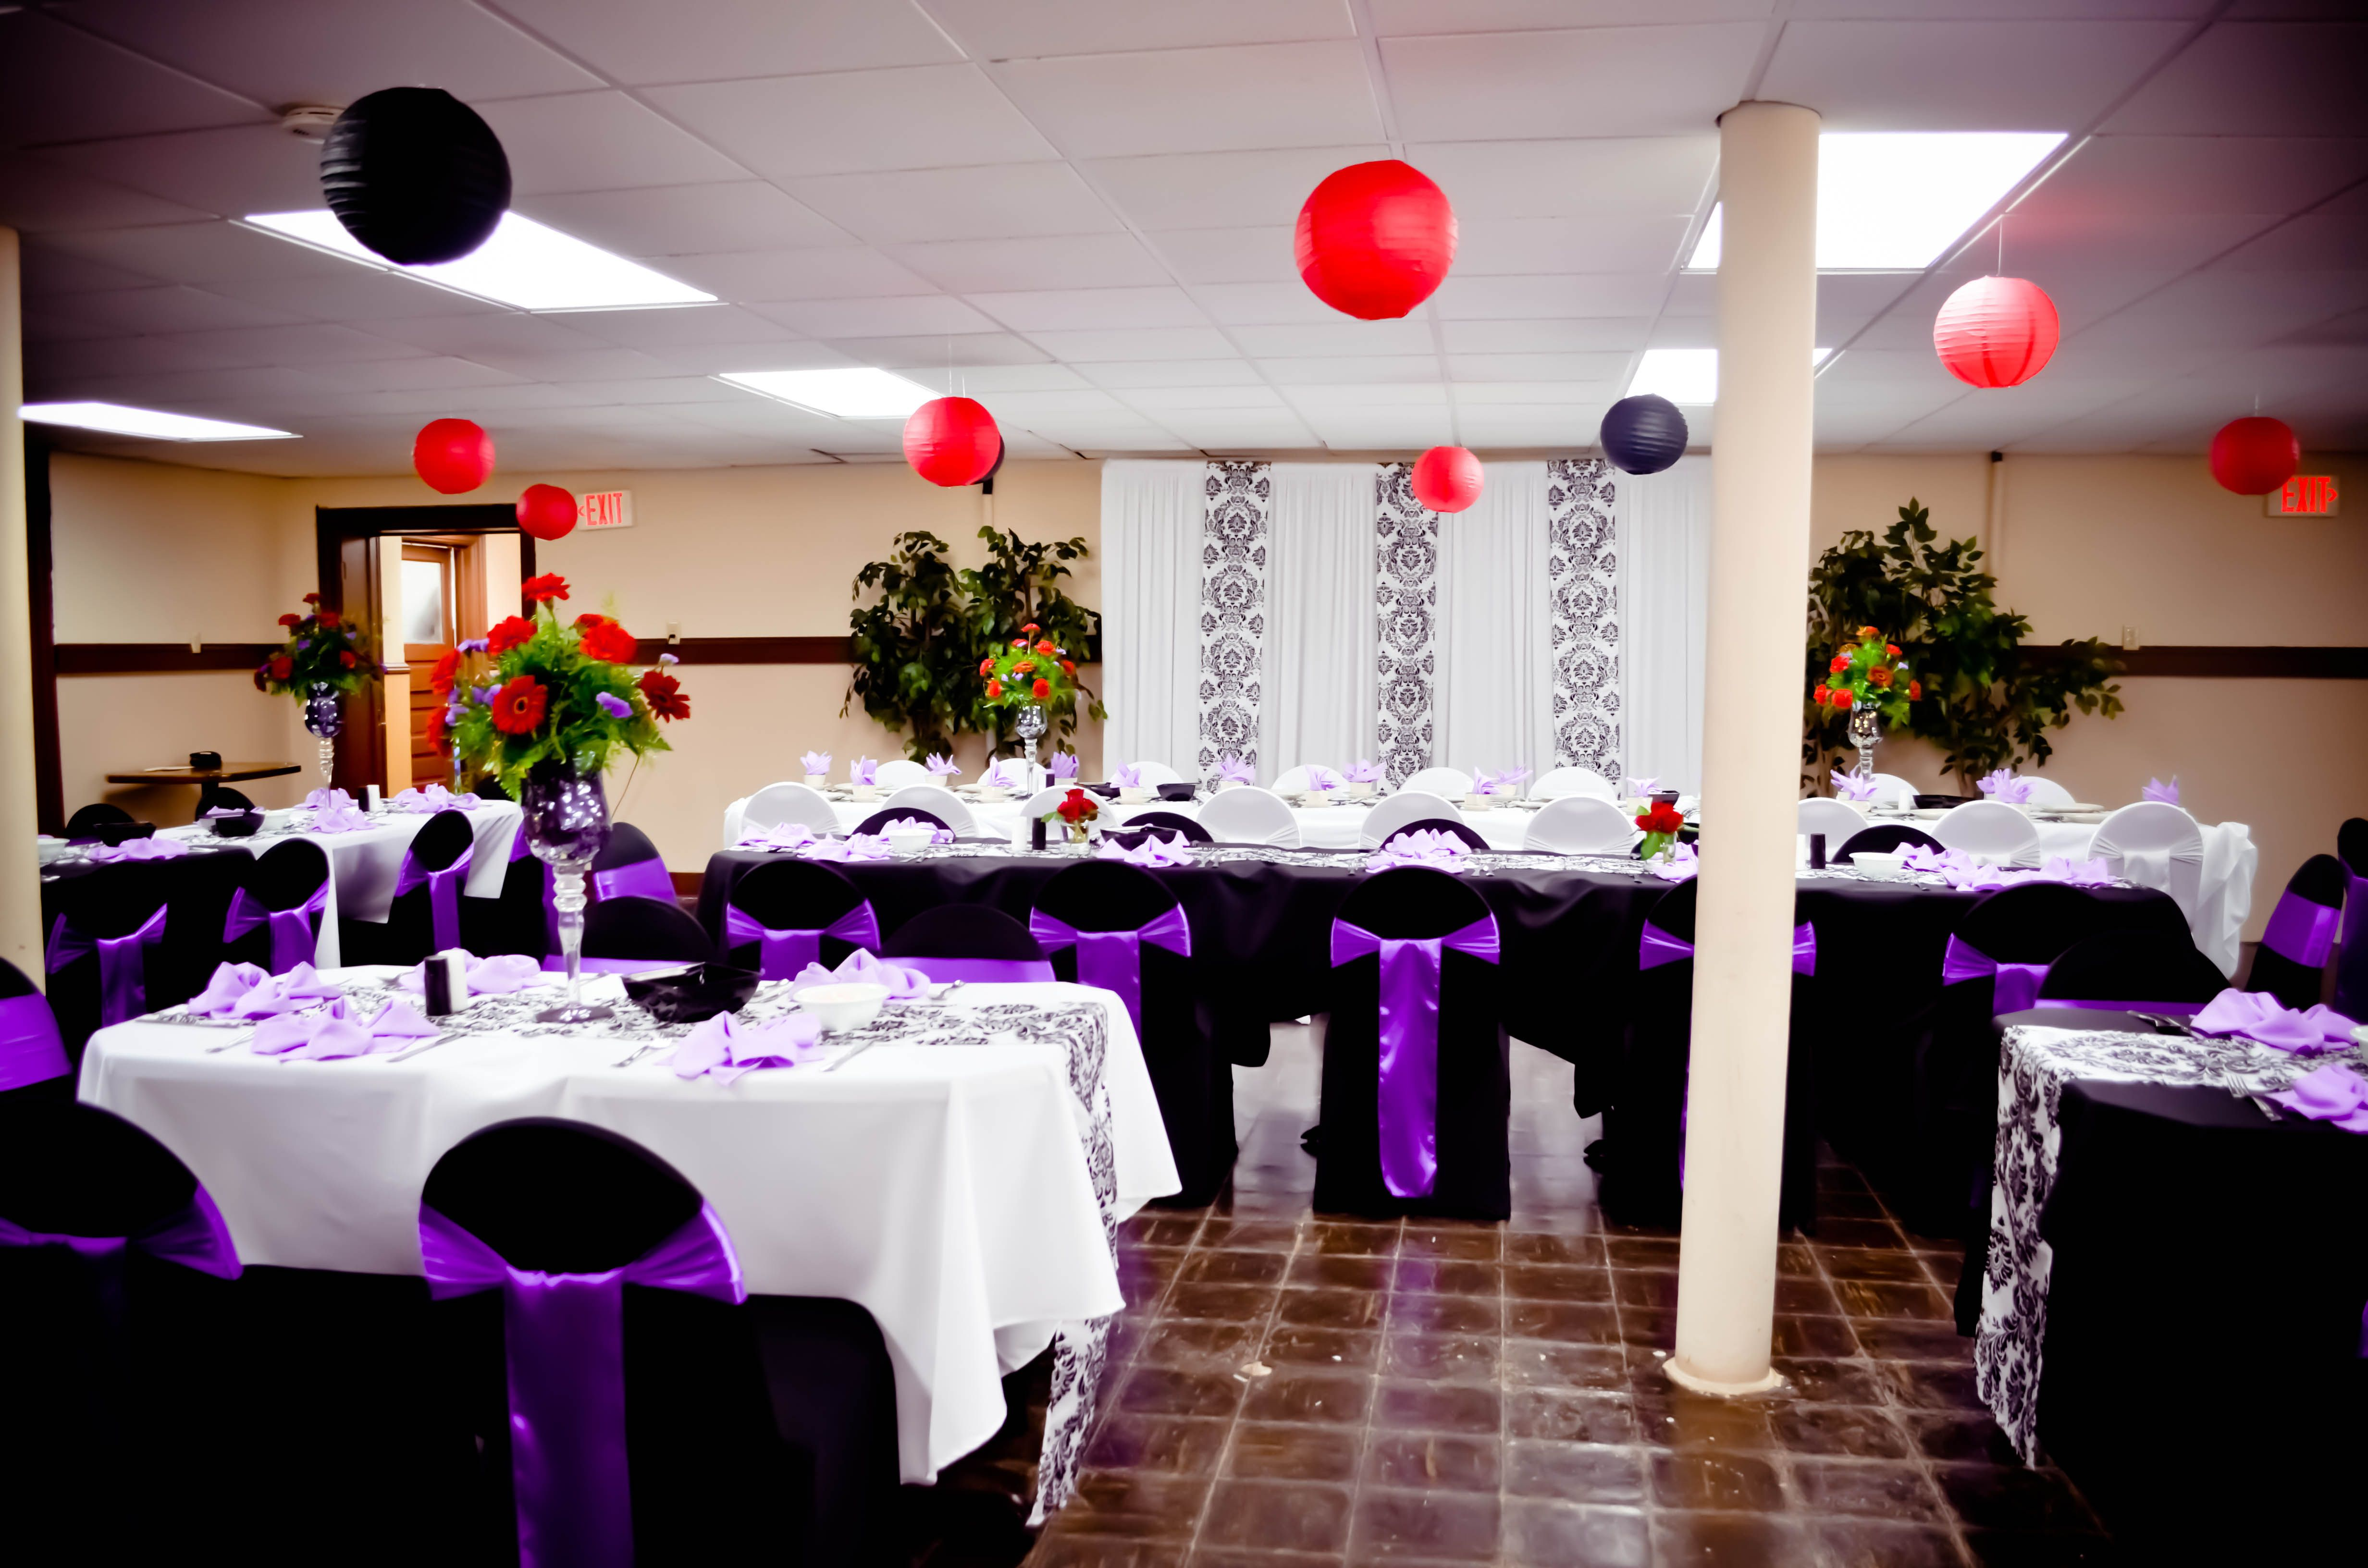 Event Black & White Spandex Chair Covers Purple Satin Sashes White Polyester Tablecloths